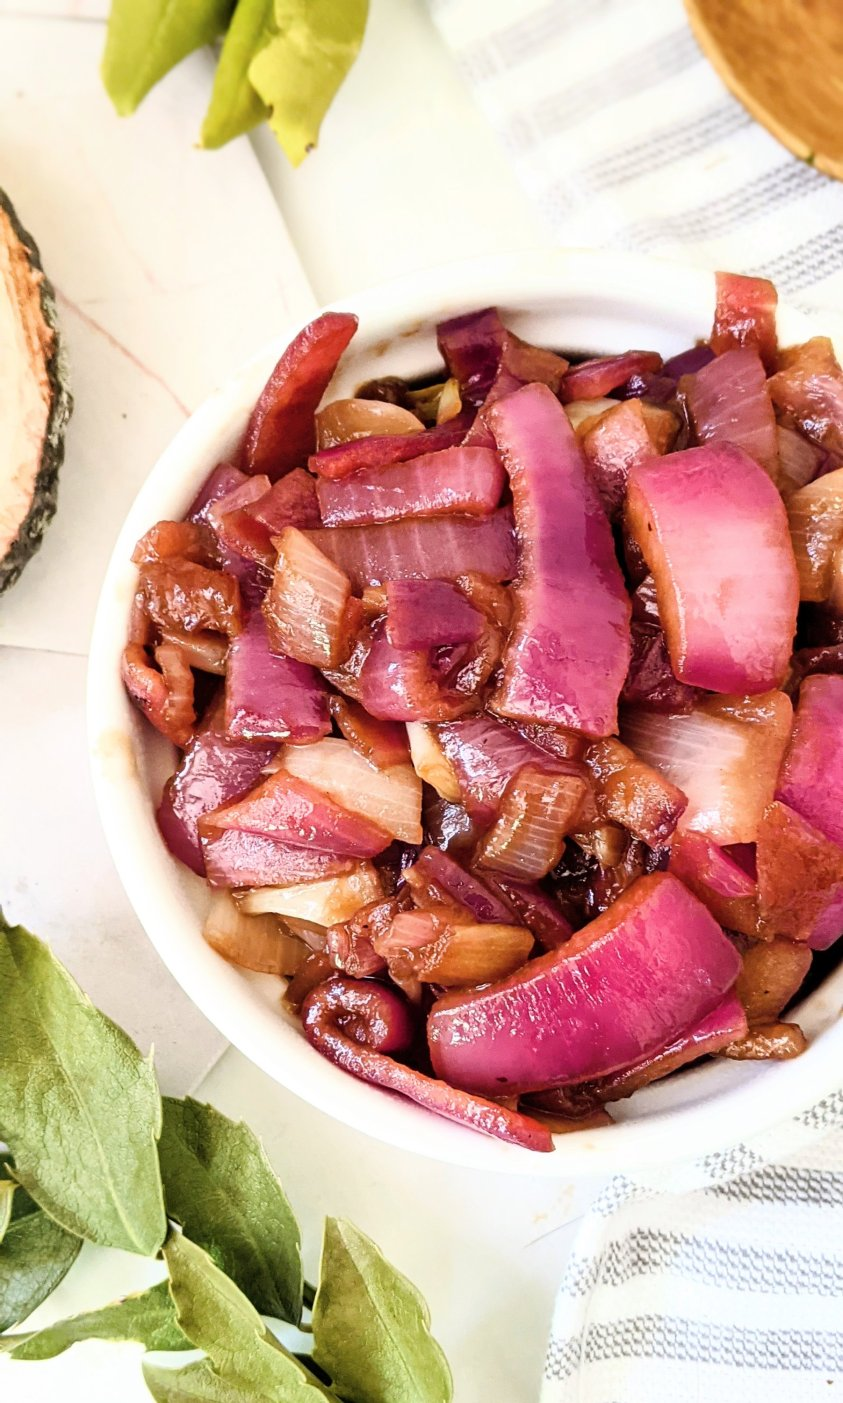 caramelized red onions for burgers frisco melts or grilled cheeses, caramelized onions for tacos or fajitas vegan gluten free vegetarian sweet caramelized red onion recipes